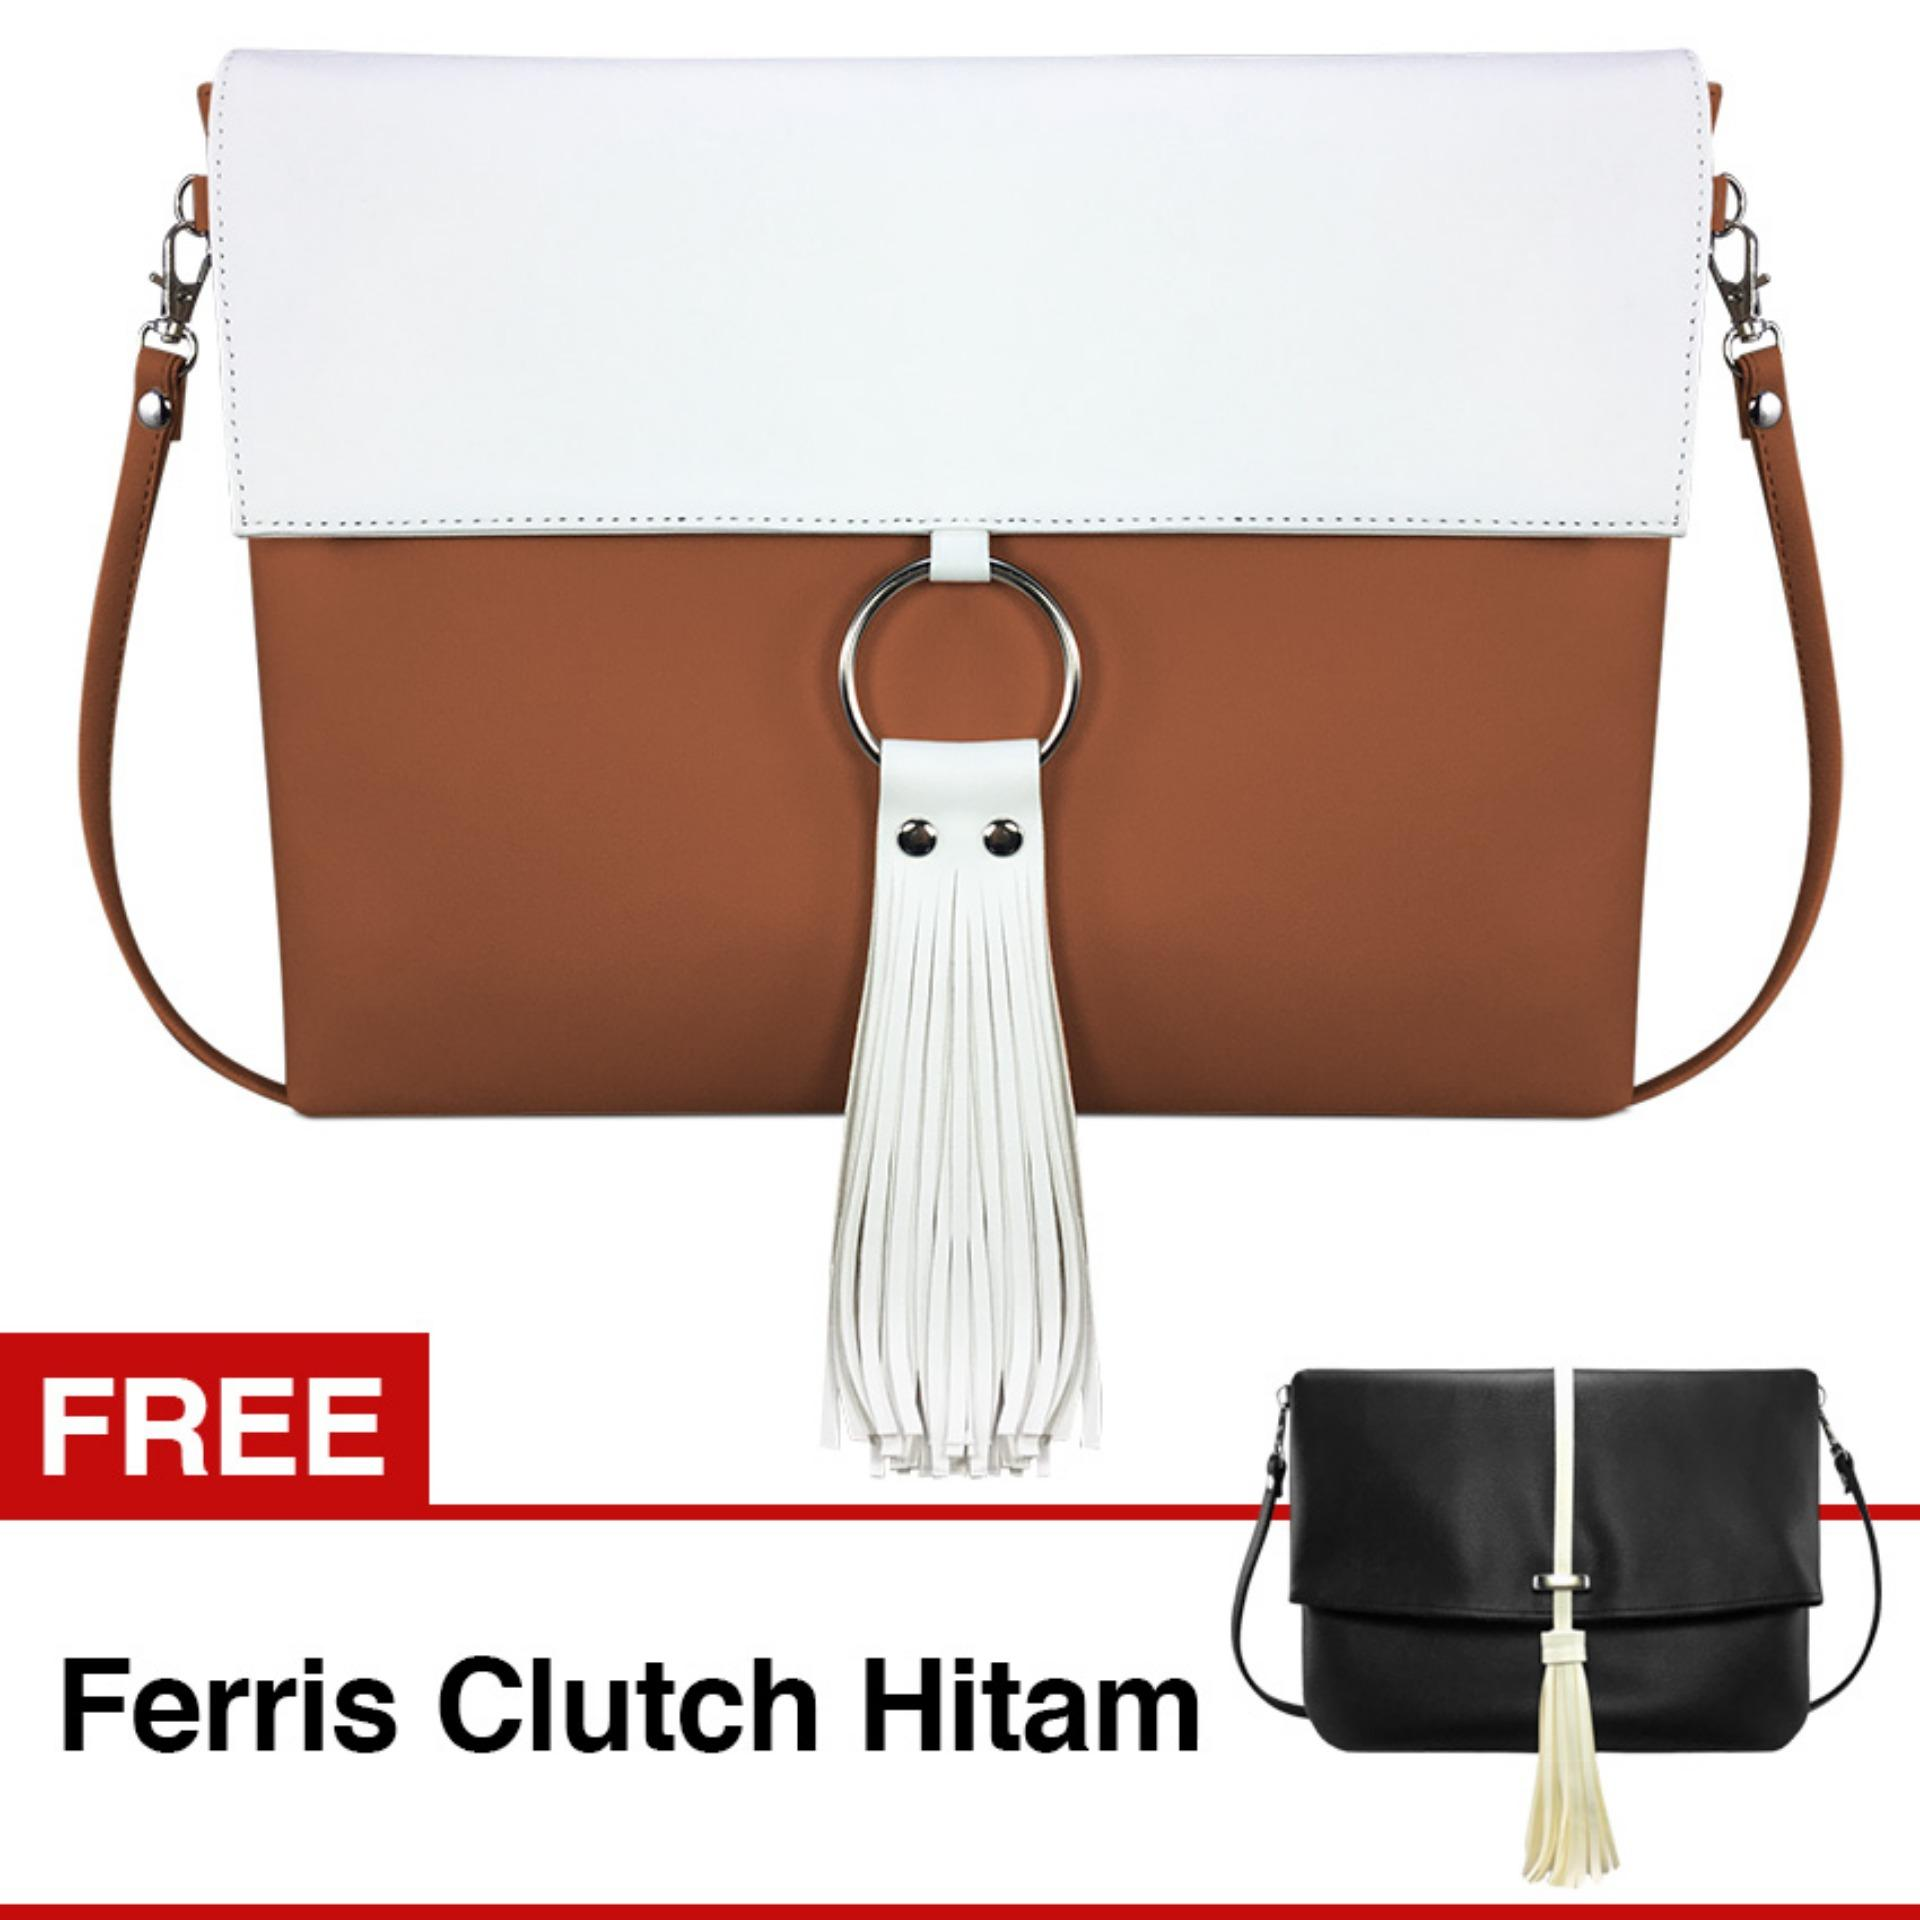 Beli Vona Robin Gratis Free Ferris Hitam Paket 2 In 1 Tas Wanita Selempang Tangan Shoulder Bag Handbag Sling Crossbody Tote Dompet Slingbag Purse Clutch Faux Pu Leather Kulit Sintetis Tali Panjang Best Seller Terbaru New Branded Fashion Korean Style Vona